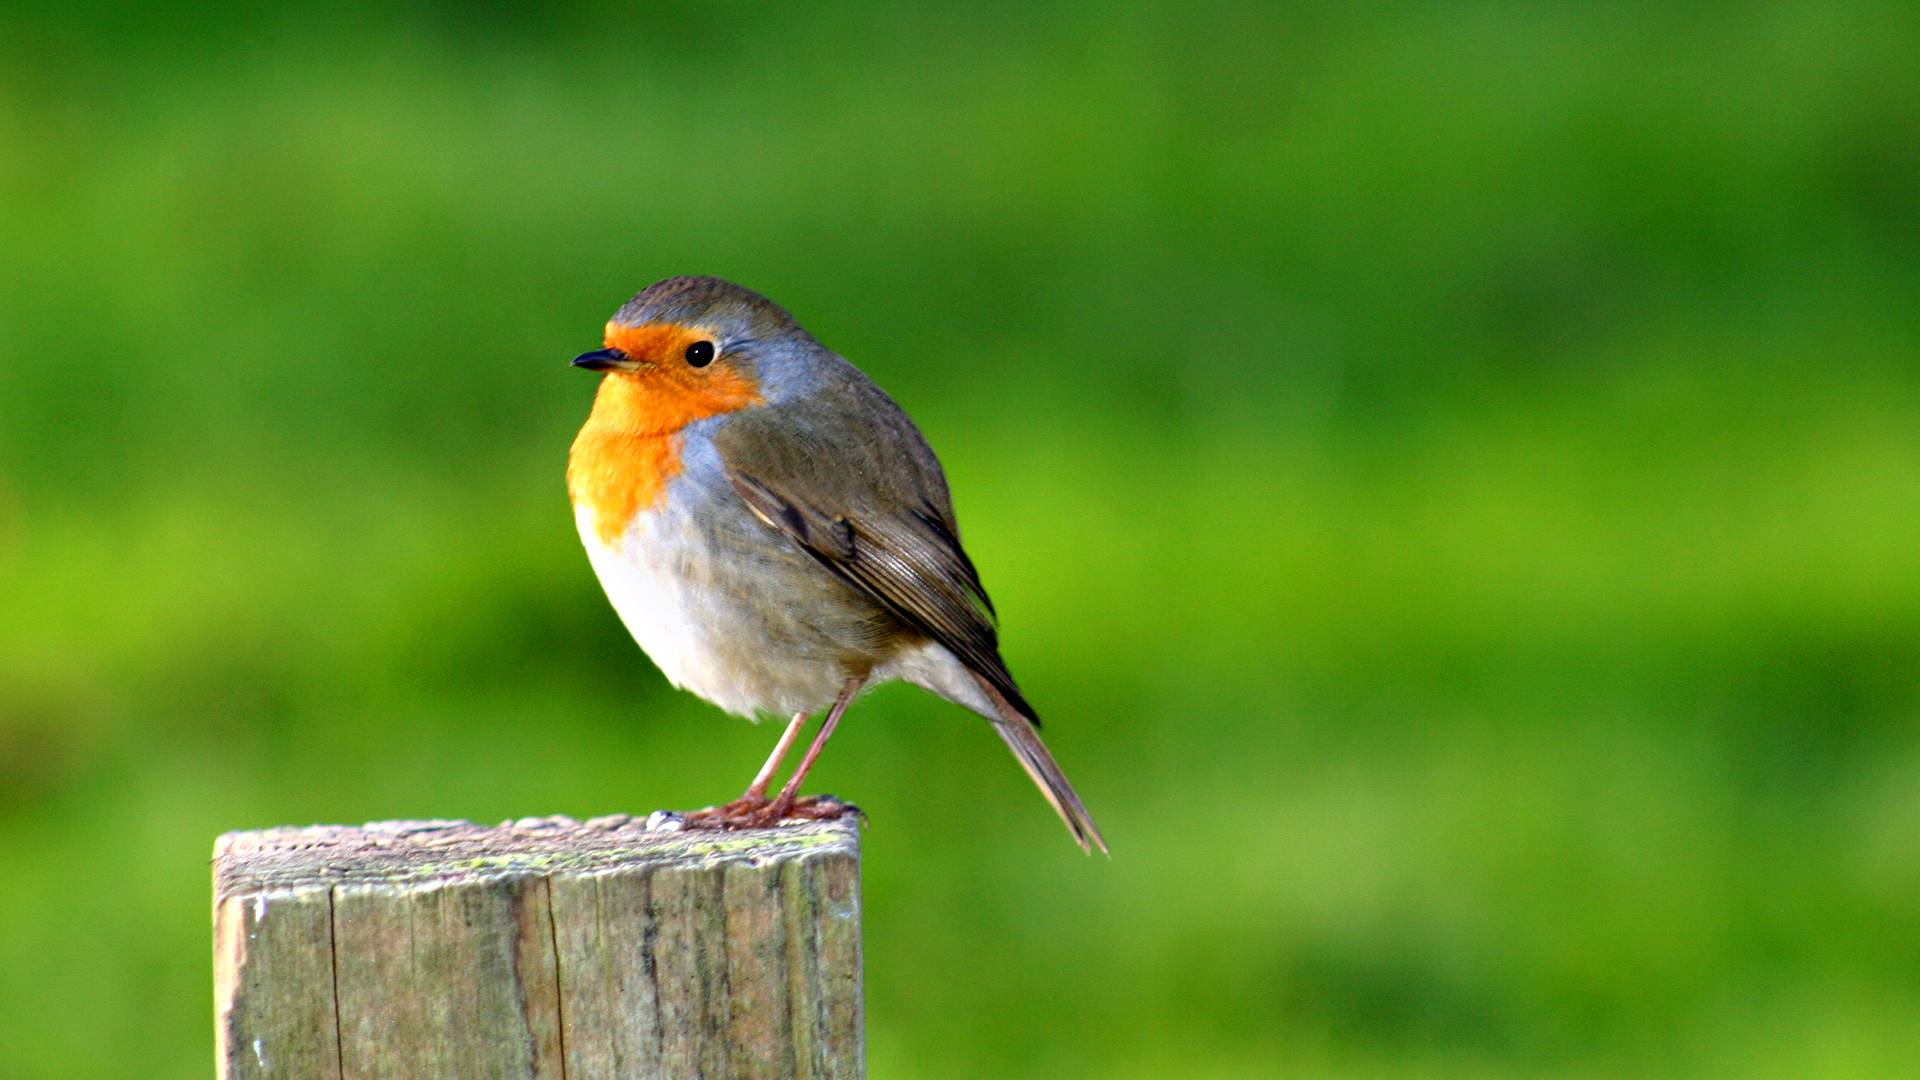 desktop wallpaper robin bird 800 x 448 285 kb jpeg